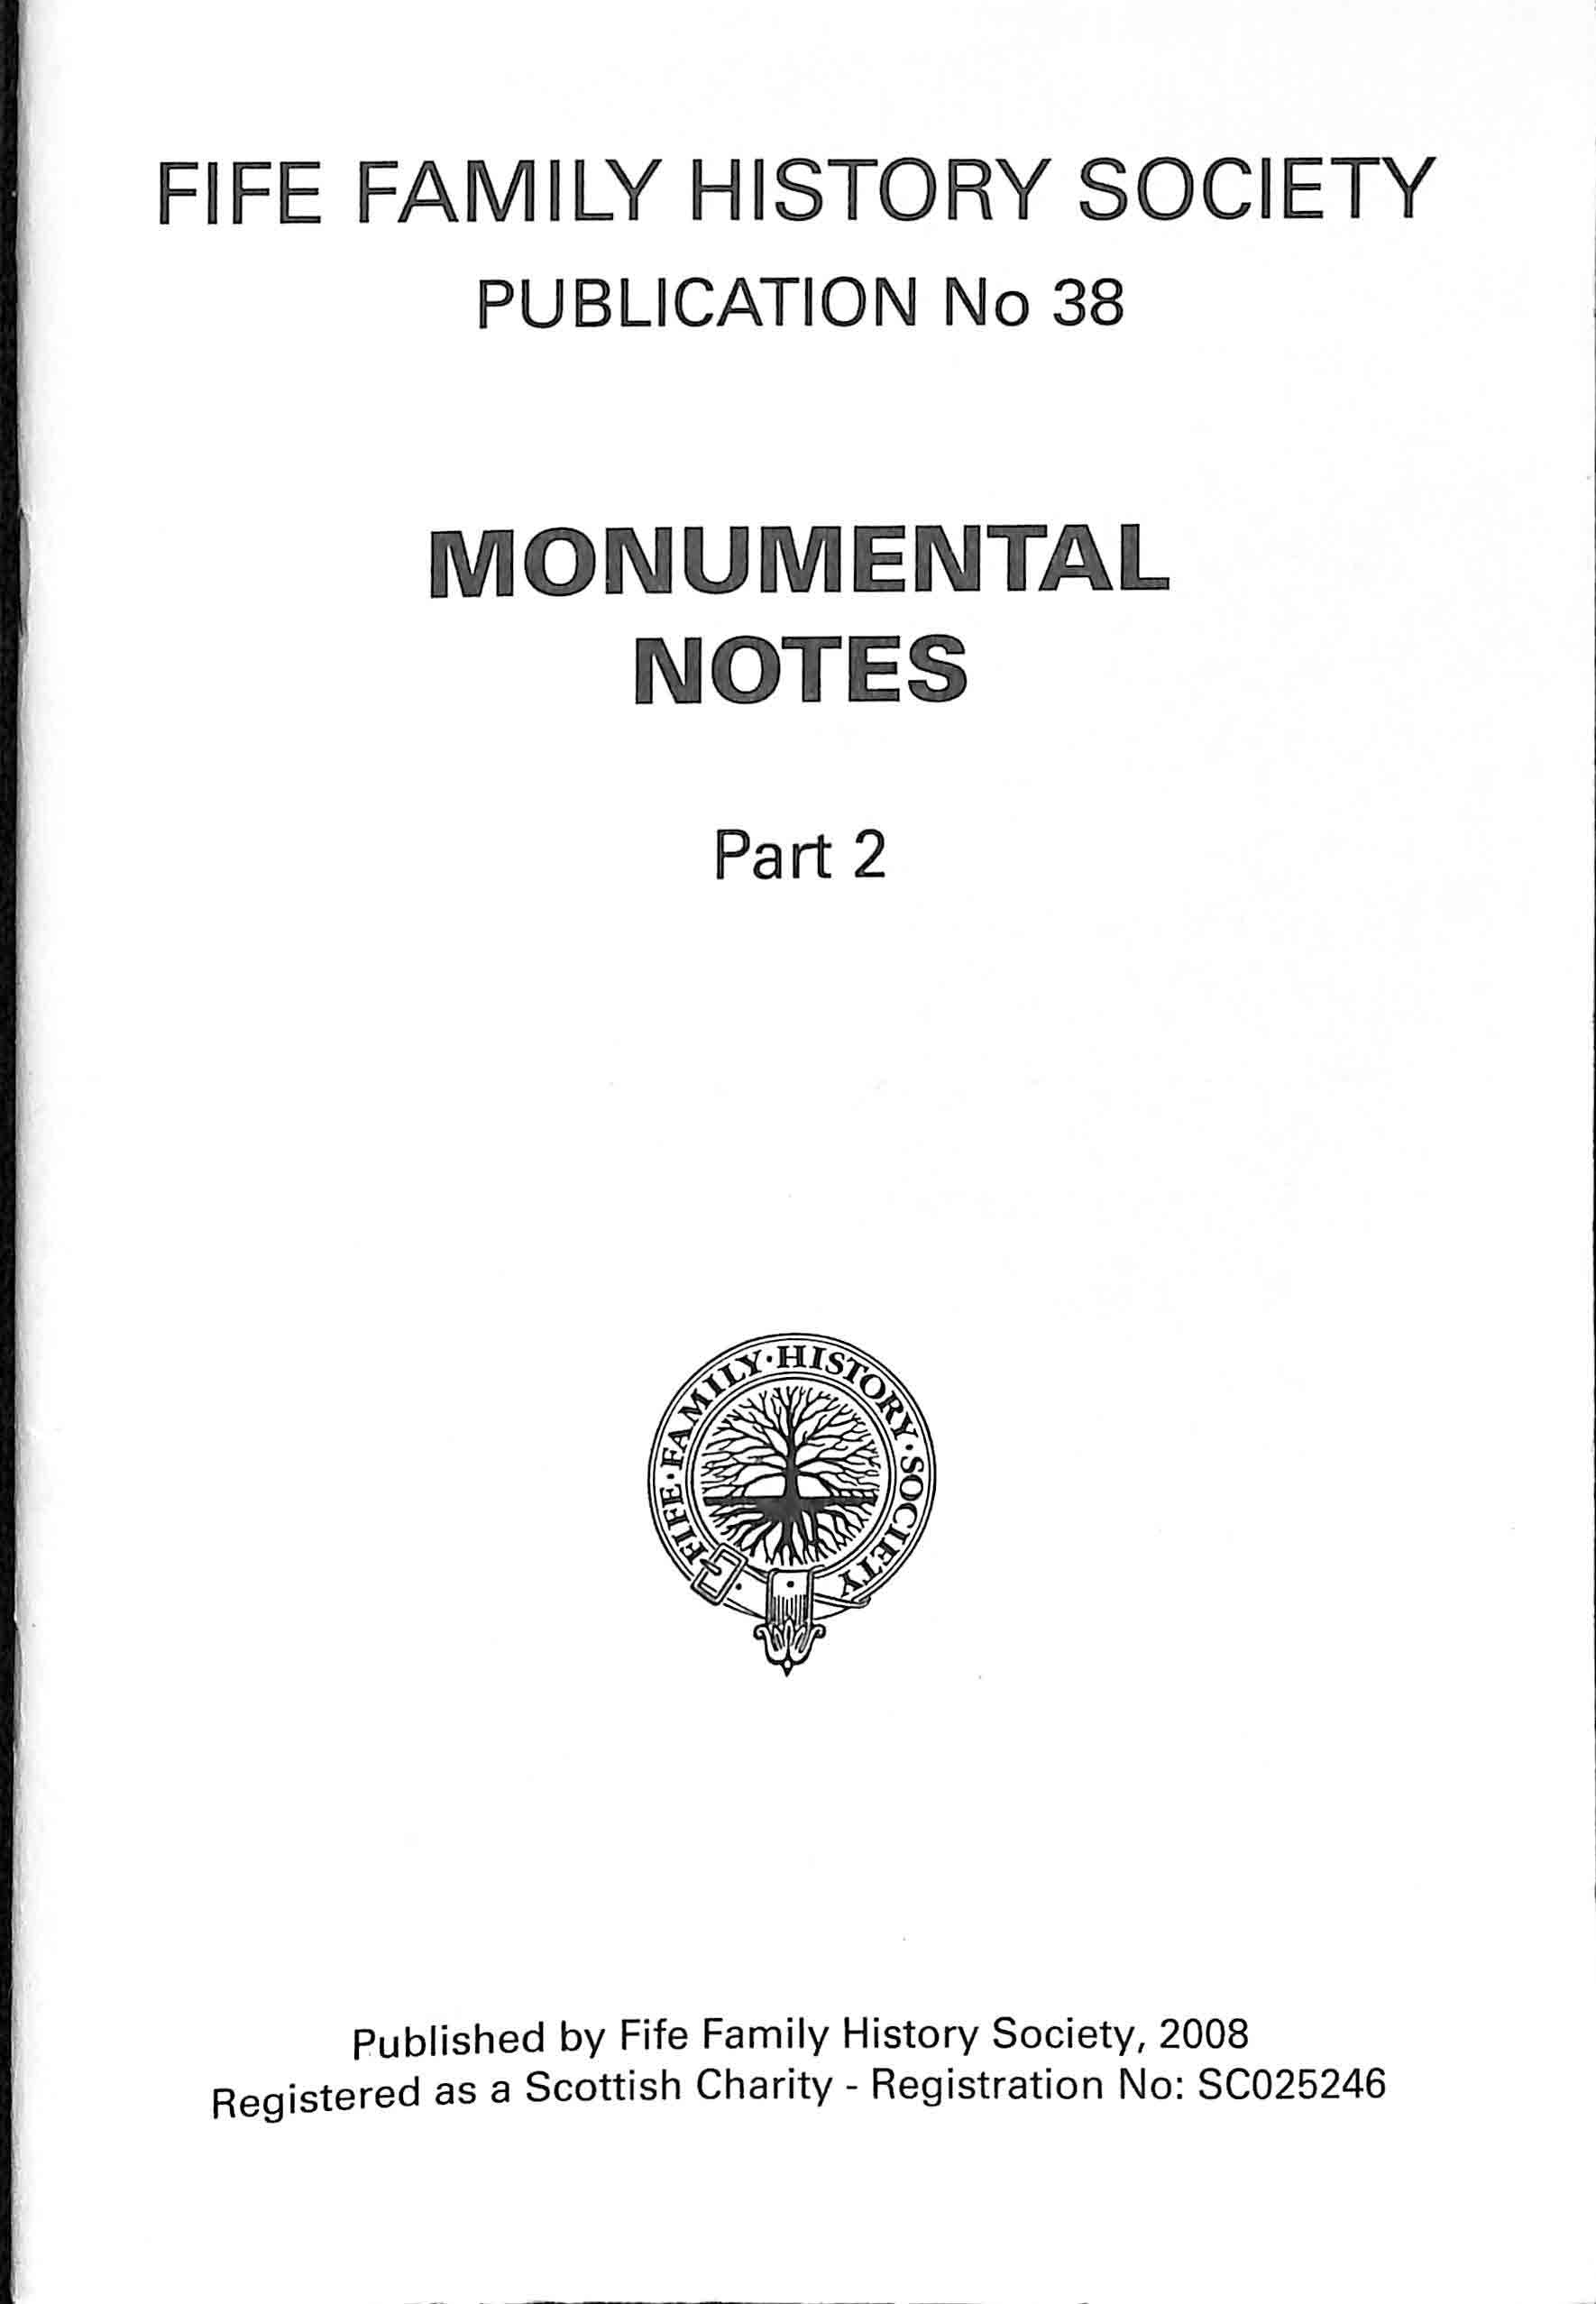 Publication 38, Monumental Notes, Part 2